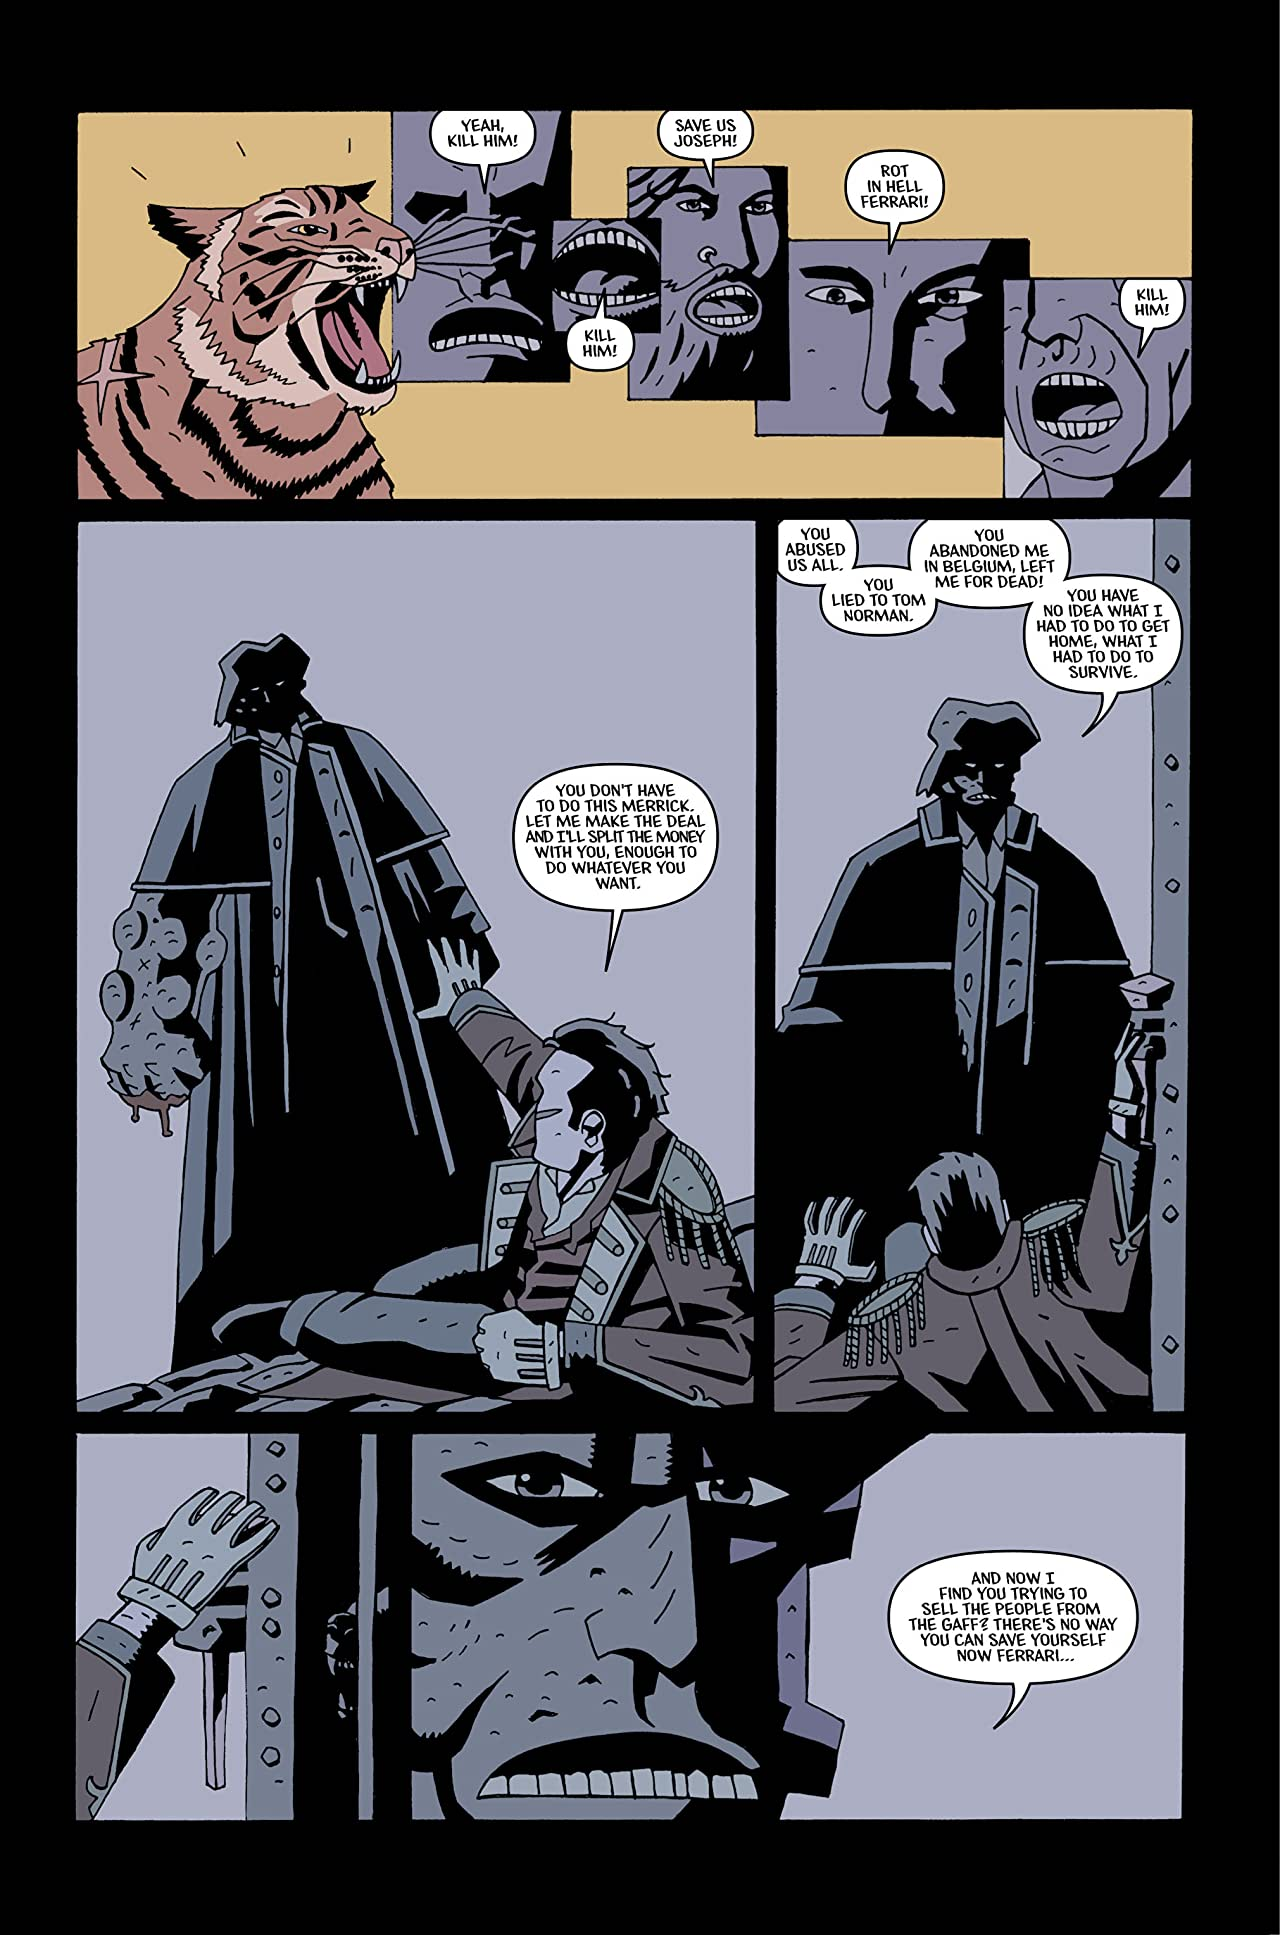 Merrick: The Sensational Elephantman #4